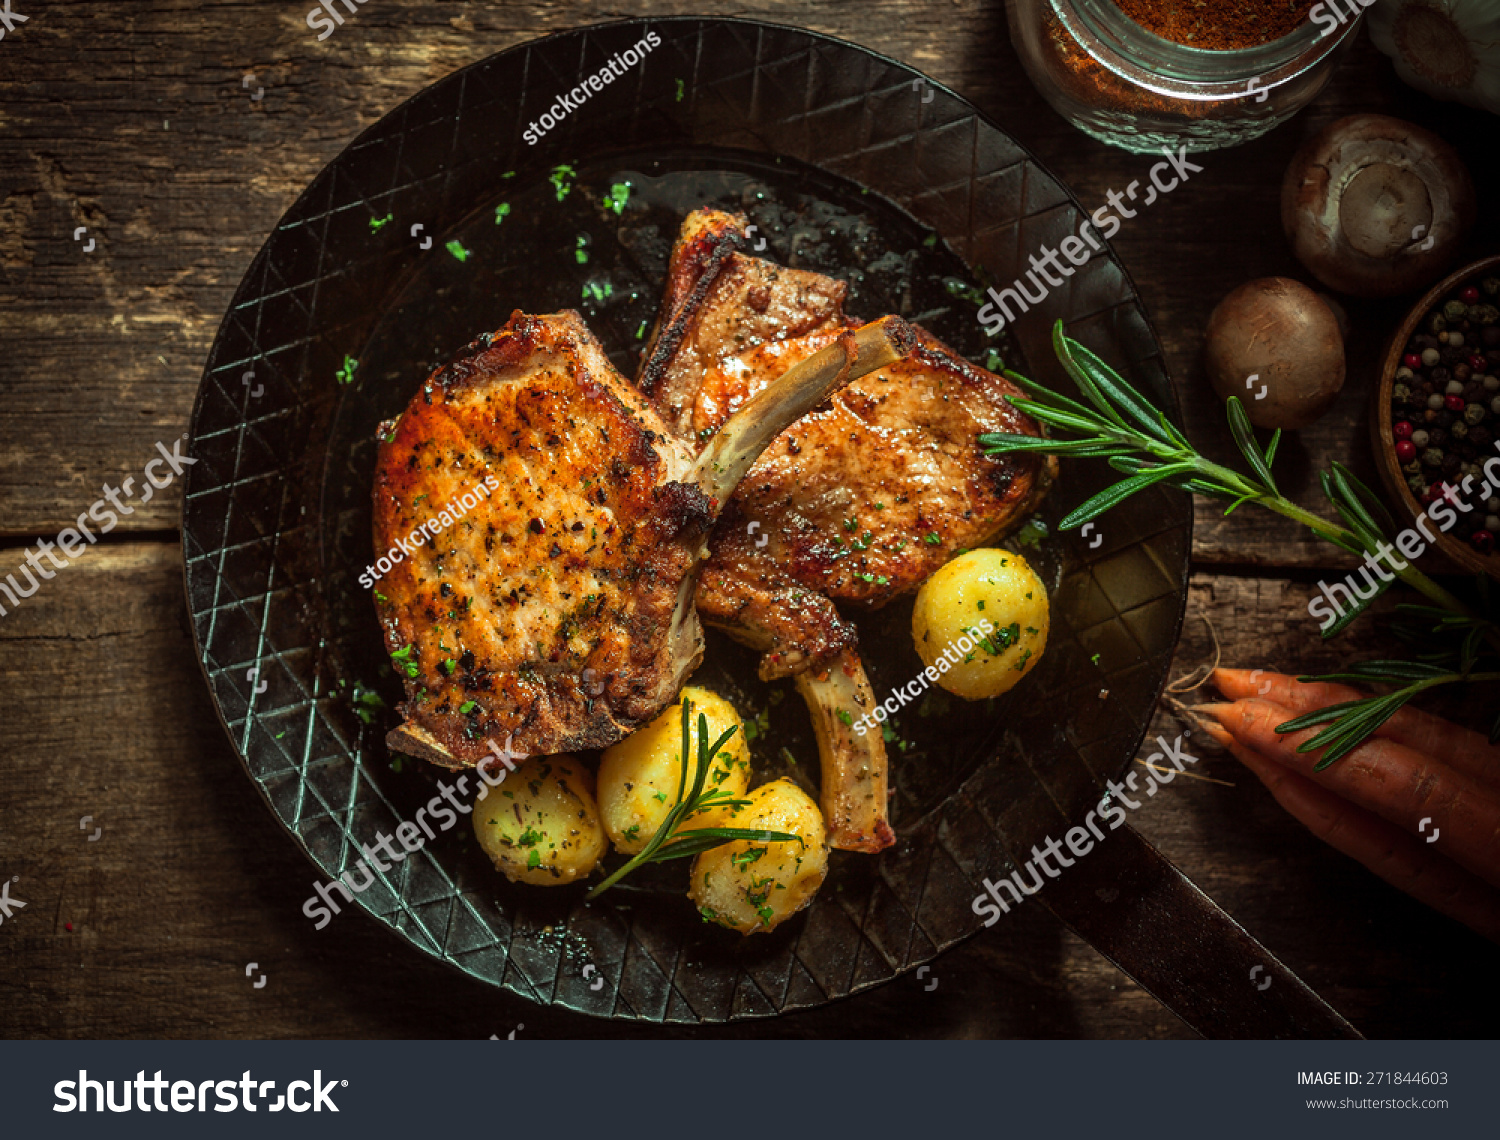 how to cook pork cutlets in a pan